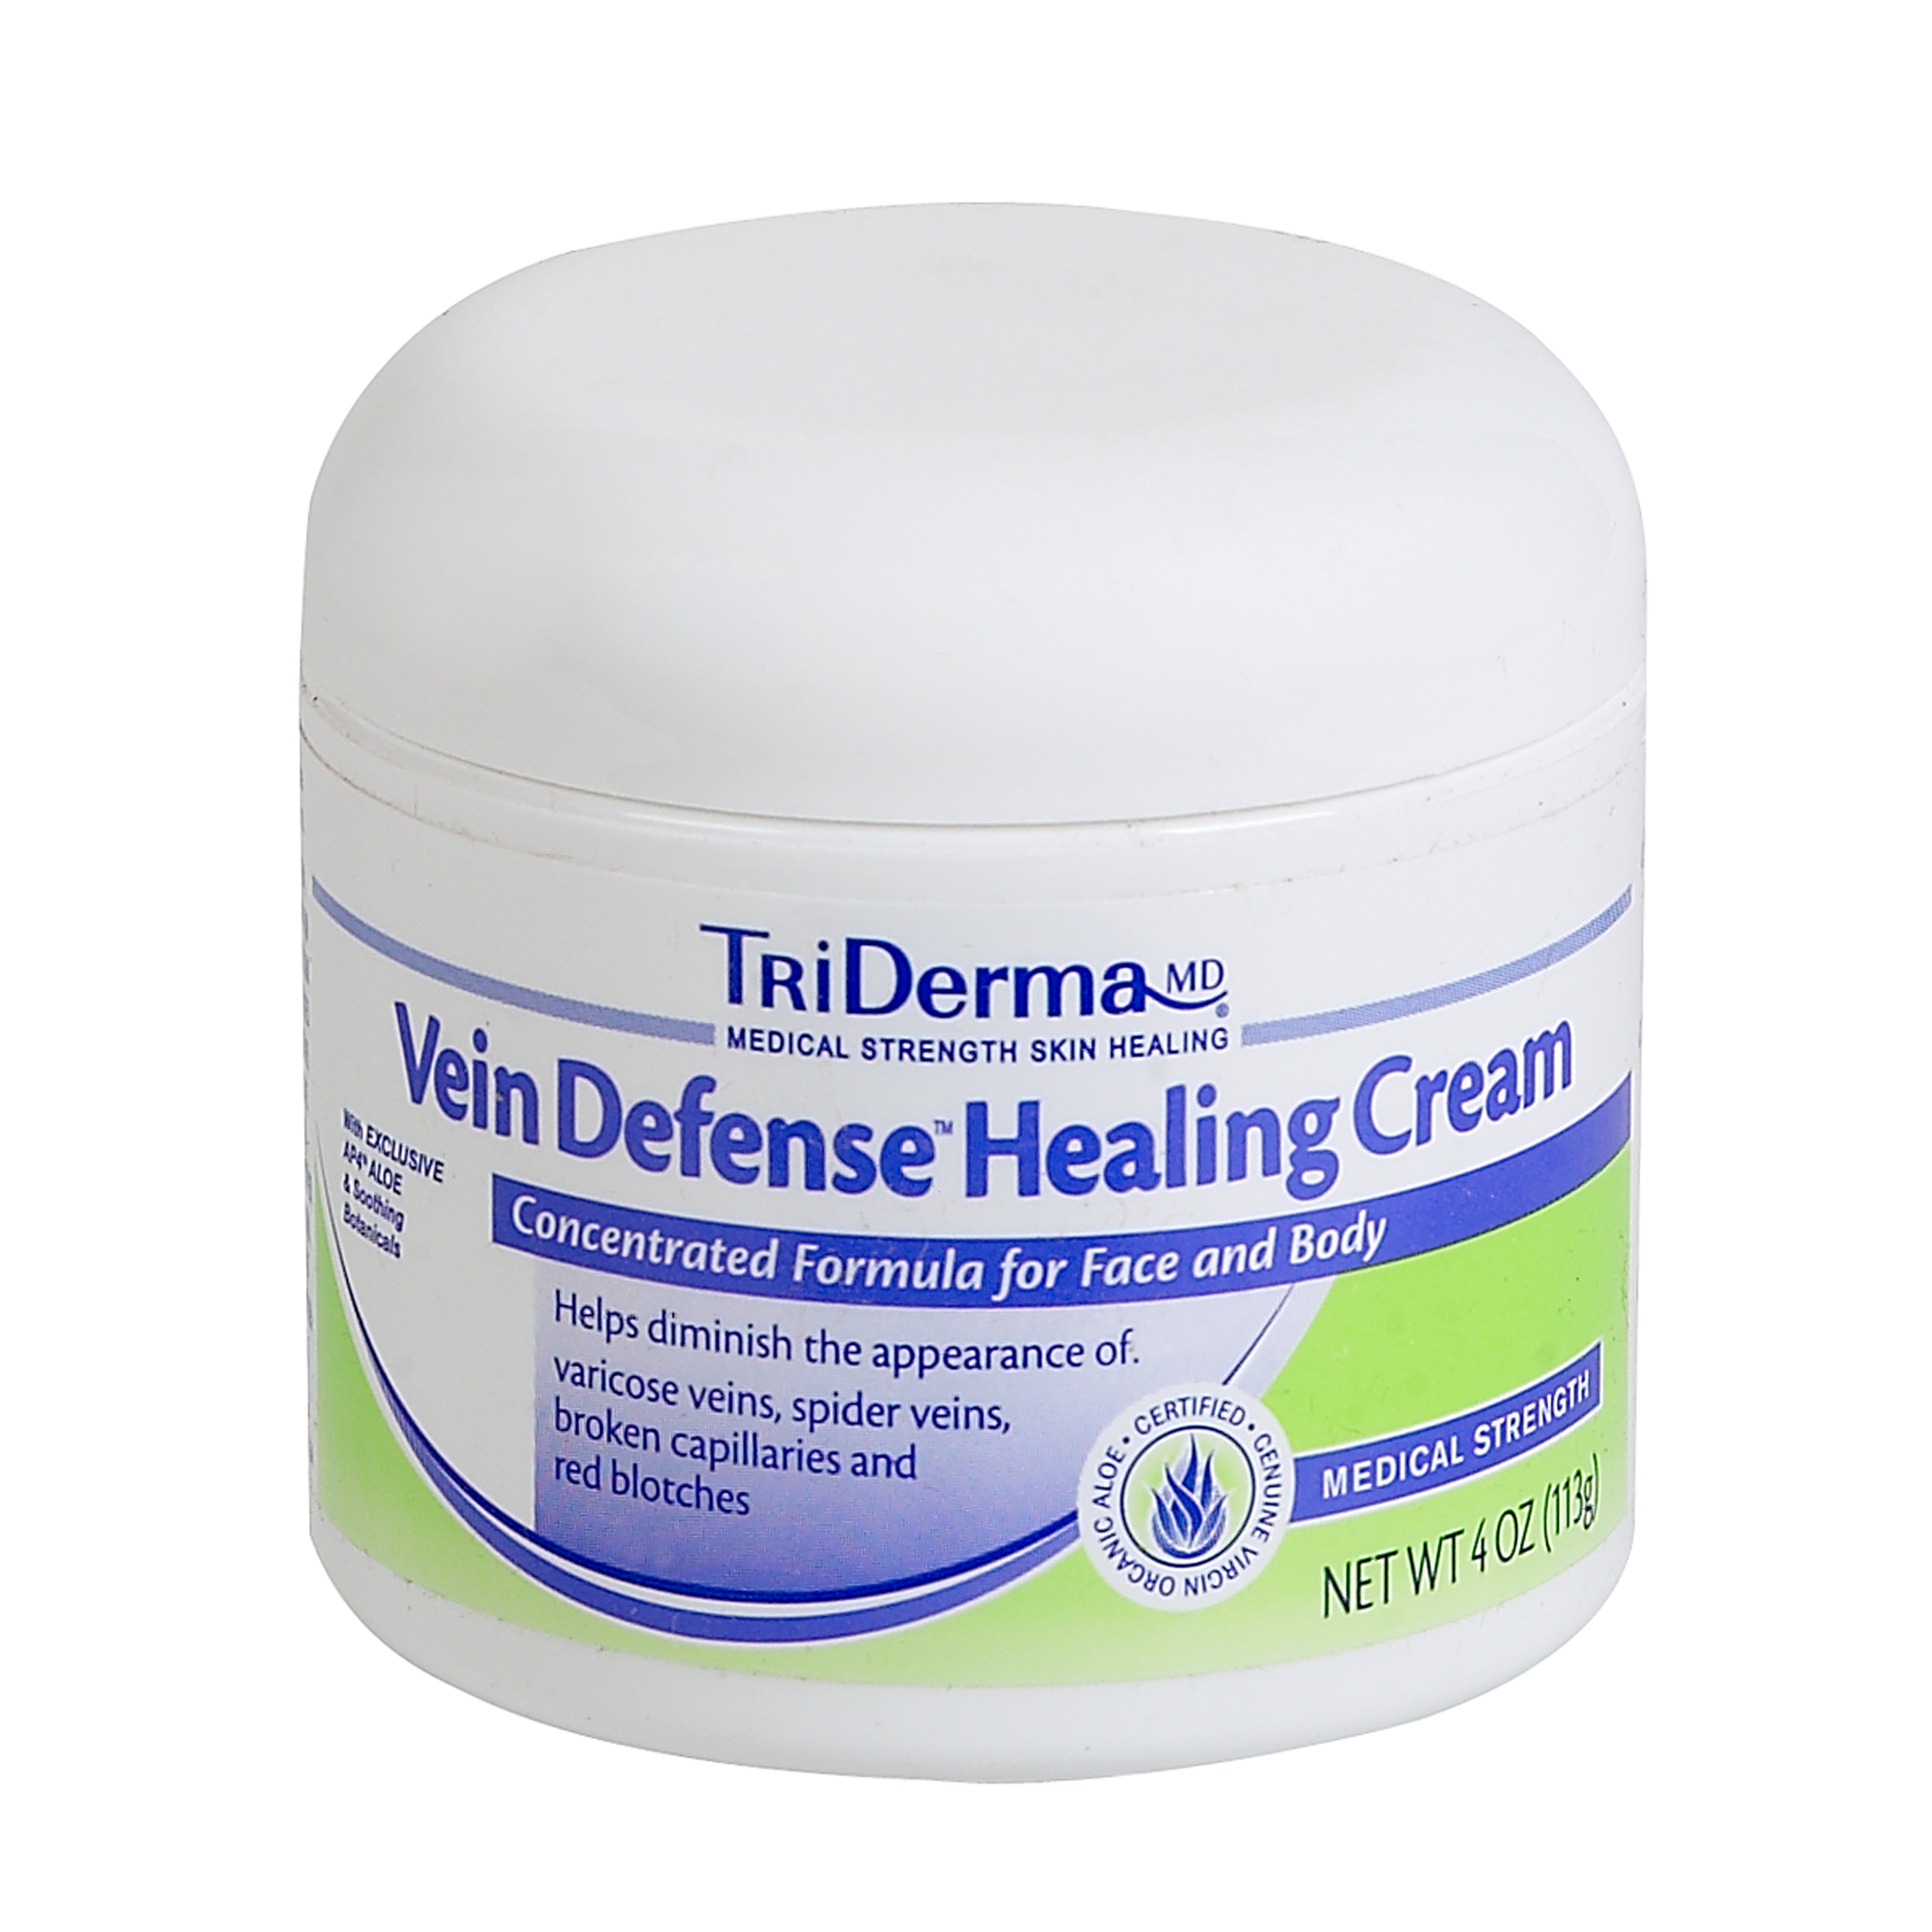 TriDerma® Vein Defense™ Healing Cream Helps Diminish the Appearance of Veins, Red Blotches, & Dark Circles (4 oz)